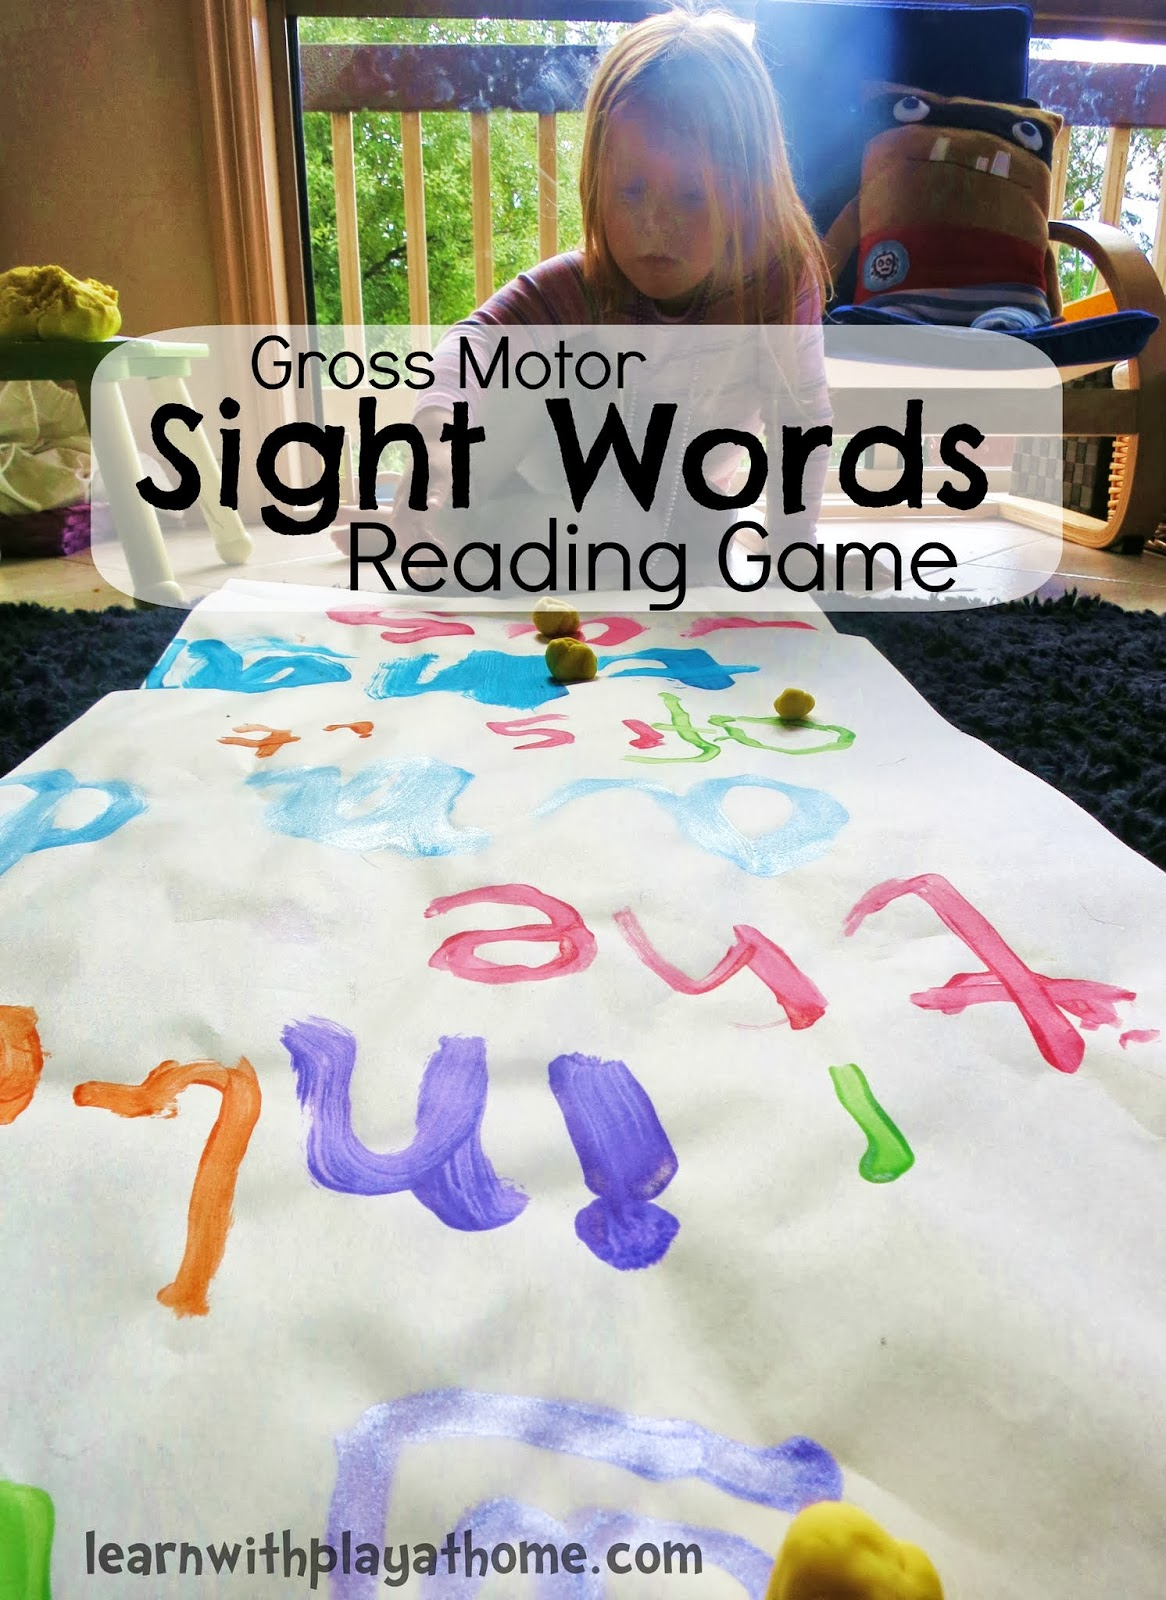 Sight Words - PrimaryGames - Play Free Online Games